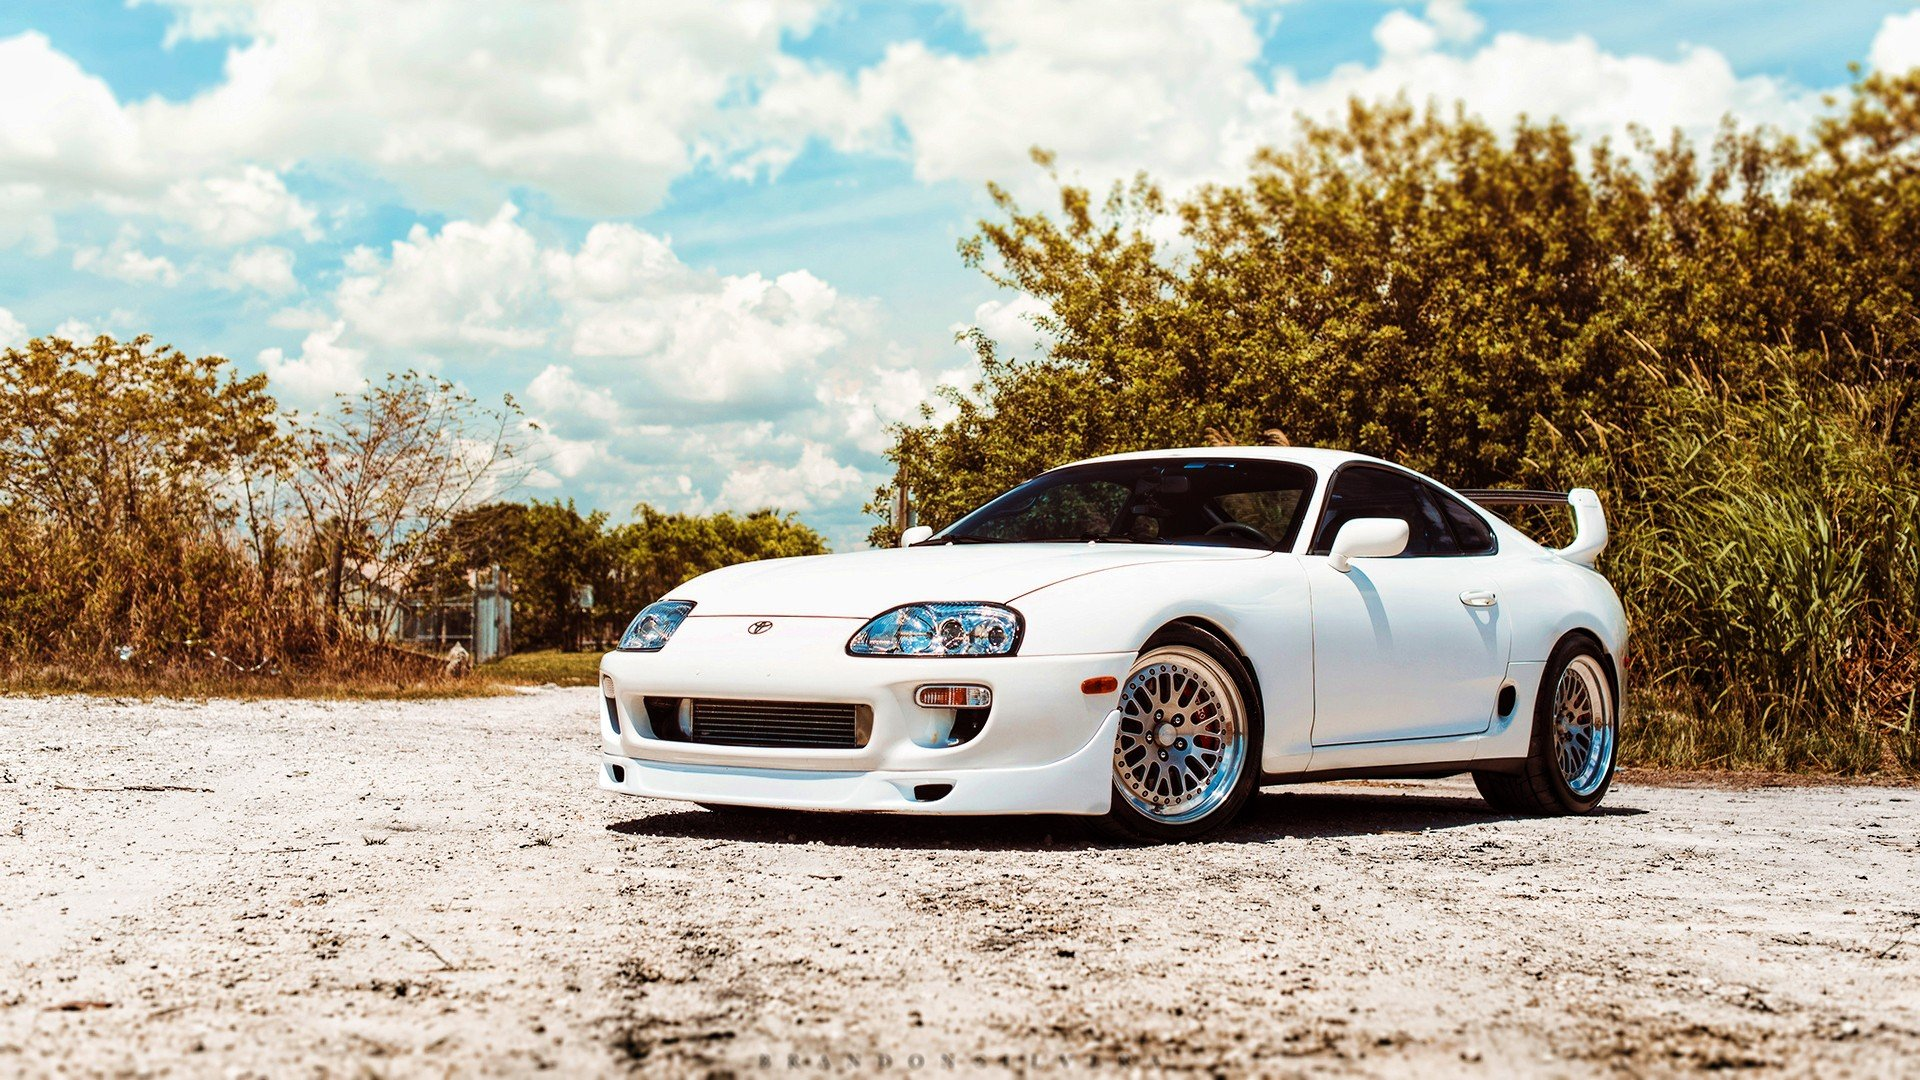 Toyota Supra Wallpapers HD Desktop and Mobile Backgrounds 1920x1080